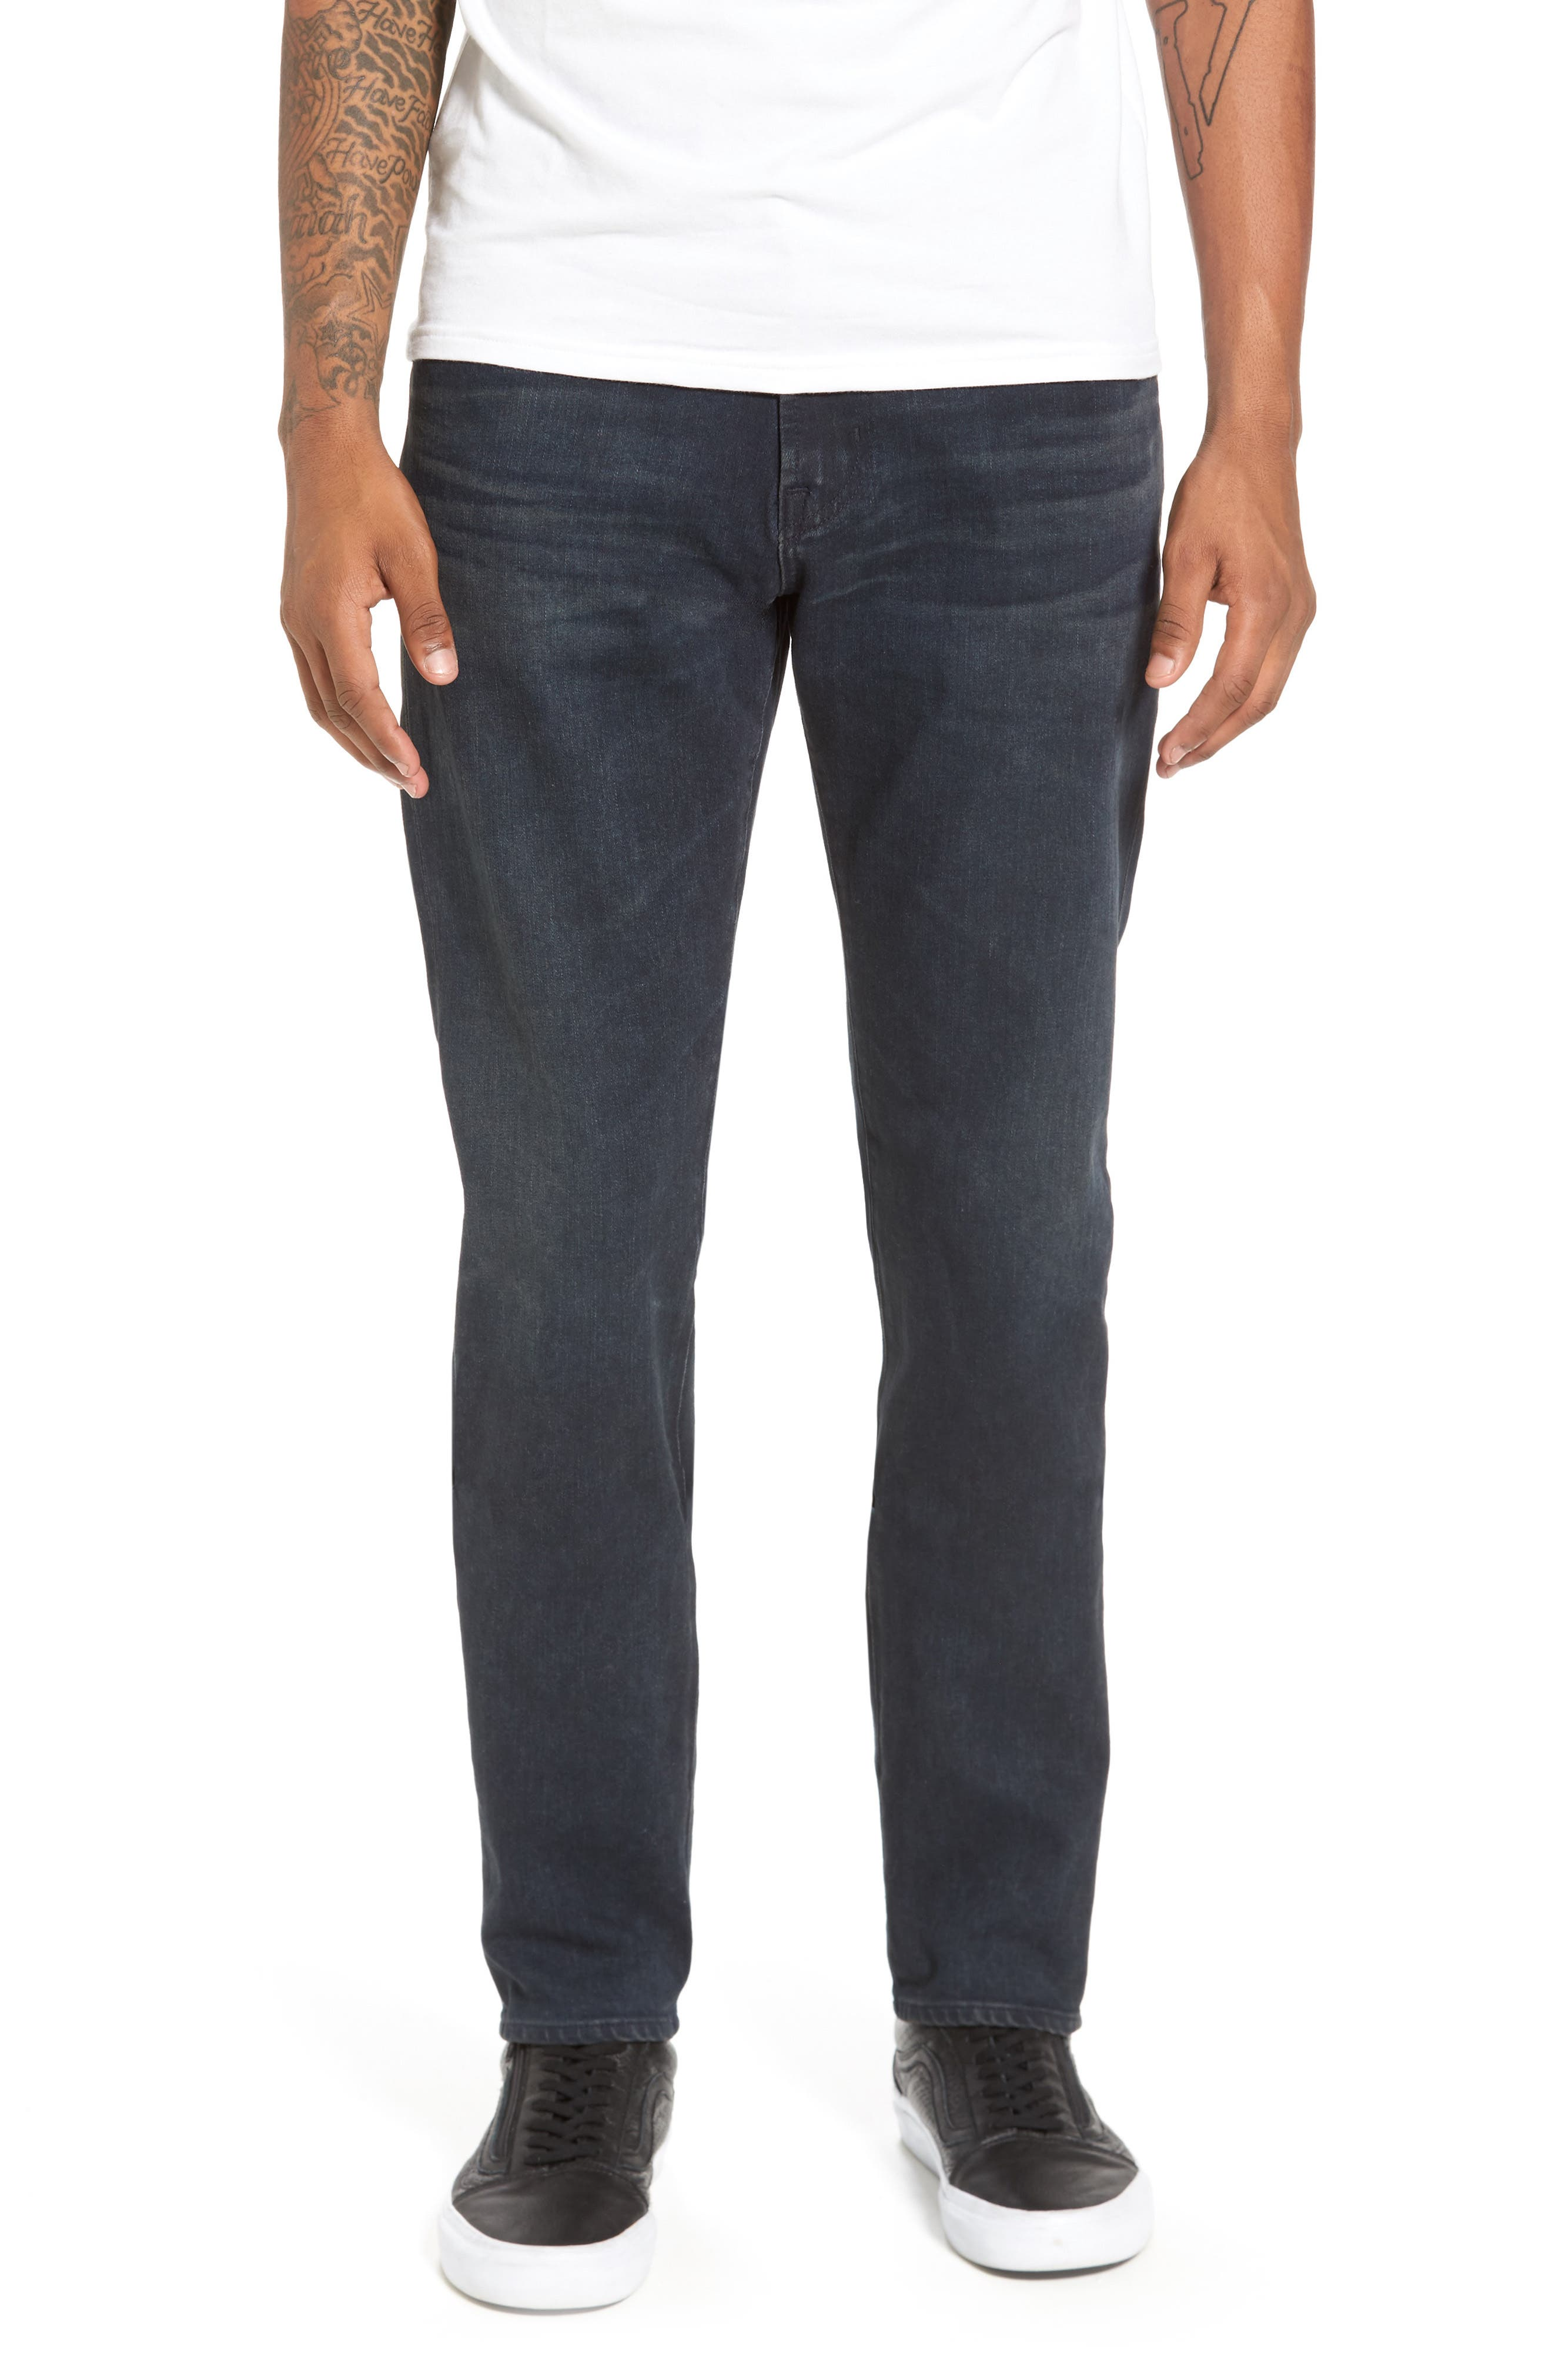 Dylan Skinny Jeans,                             Main thumbnail 1, color,                             019